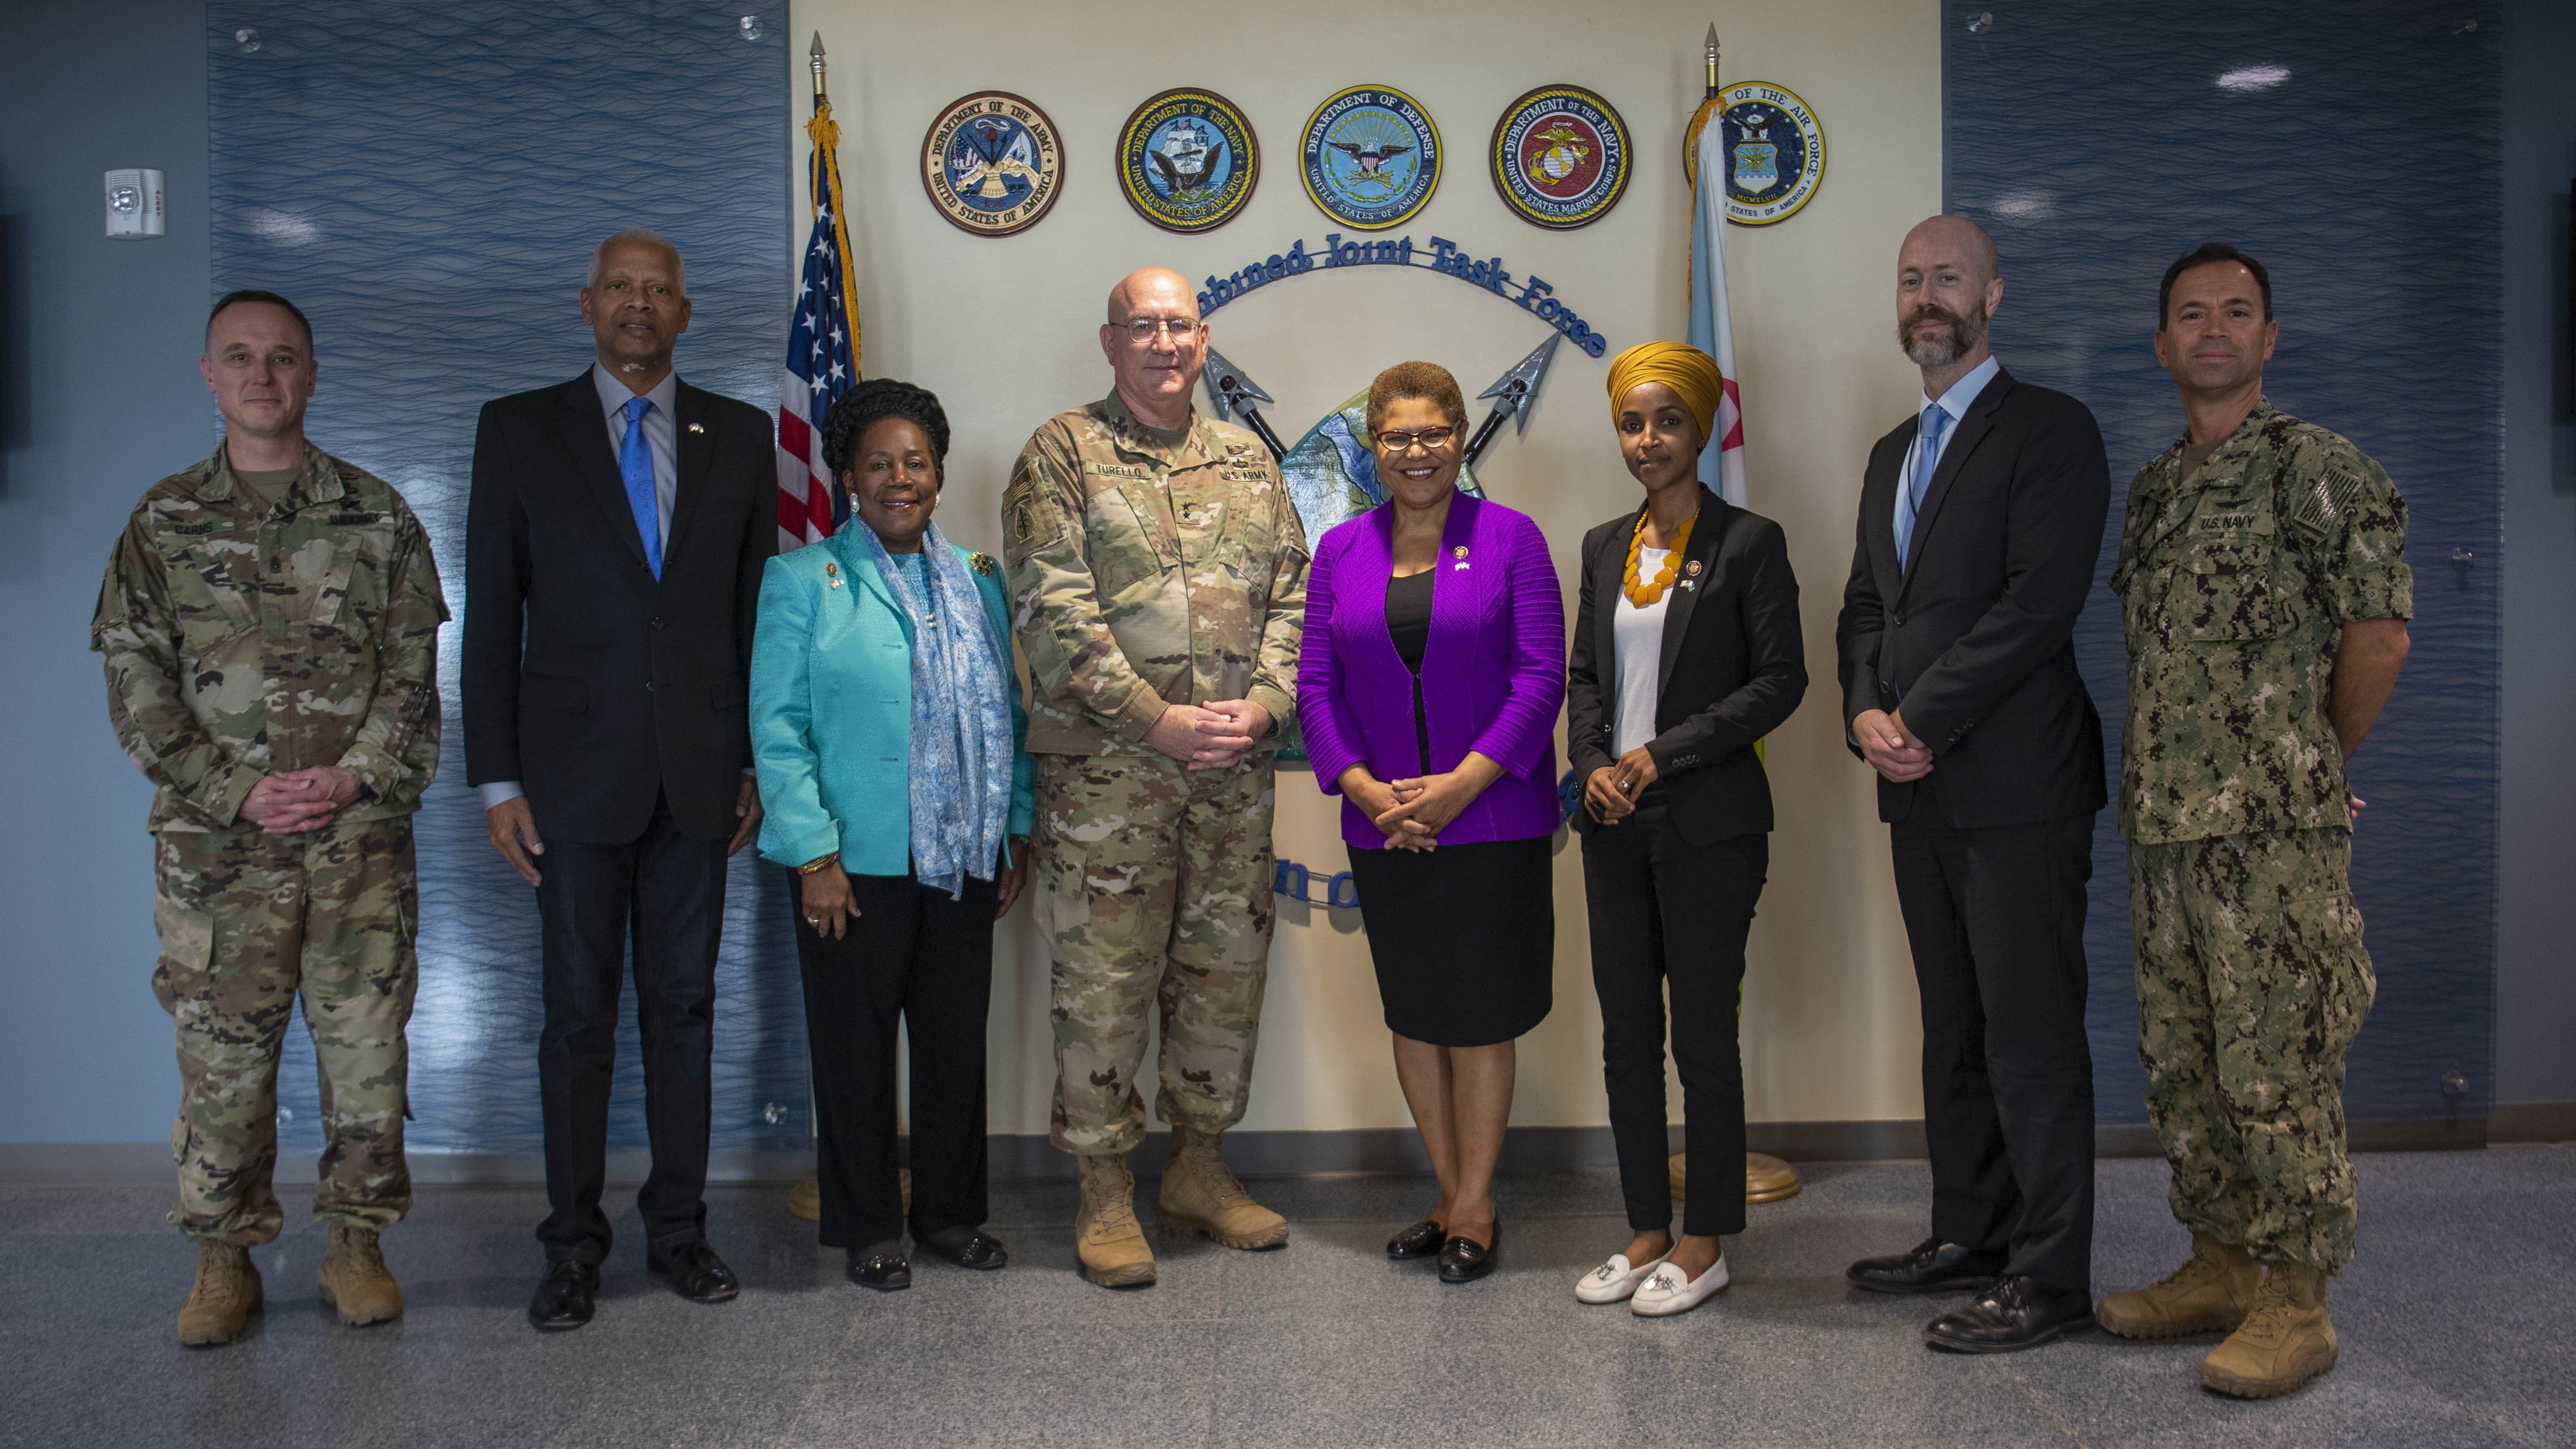 U.S. Army Maj. Gen. Michael Turello, commanding general, Combined Joint Task Force-Horn of Africa (CJTF-HOA), center-left, poses with Rep. Karen Bass (D-Calif.) center-right, for a group photo at Camp Lemonnier, Djibouti, Oct. 1, 2019. Bass visited Djibouti to promote U.S. Government and host nation partnerships in the region. (U.S. Air Force photo by Staff Sgt. J.D. Strong II)